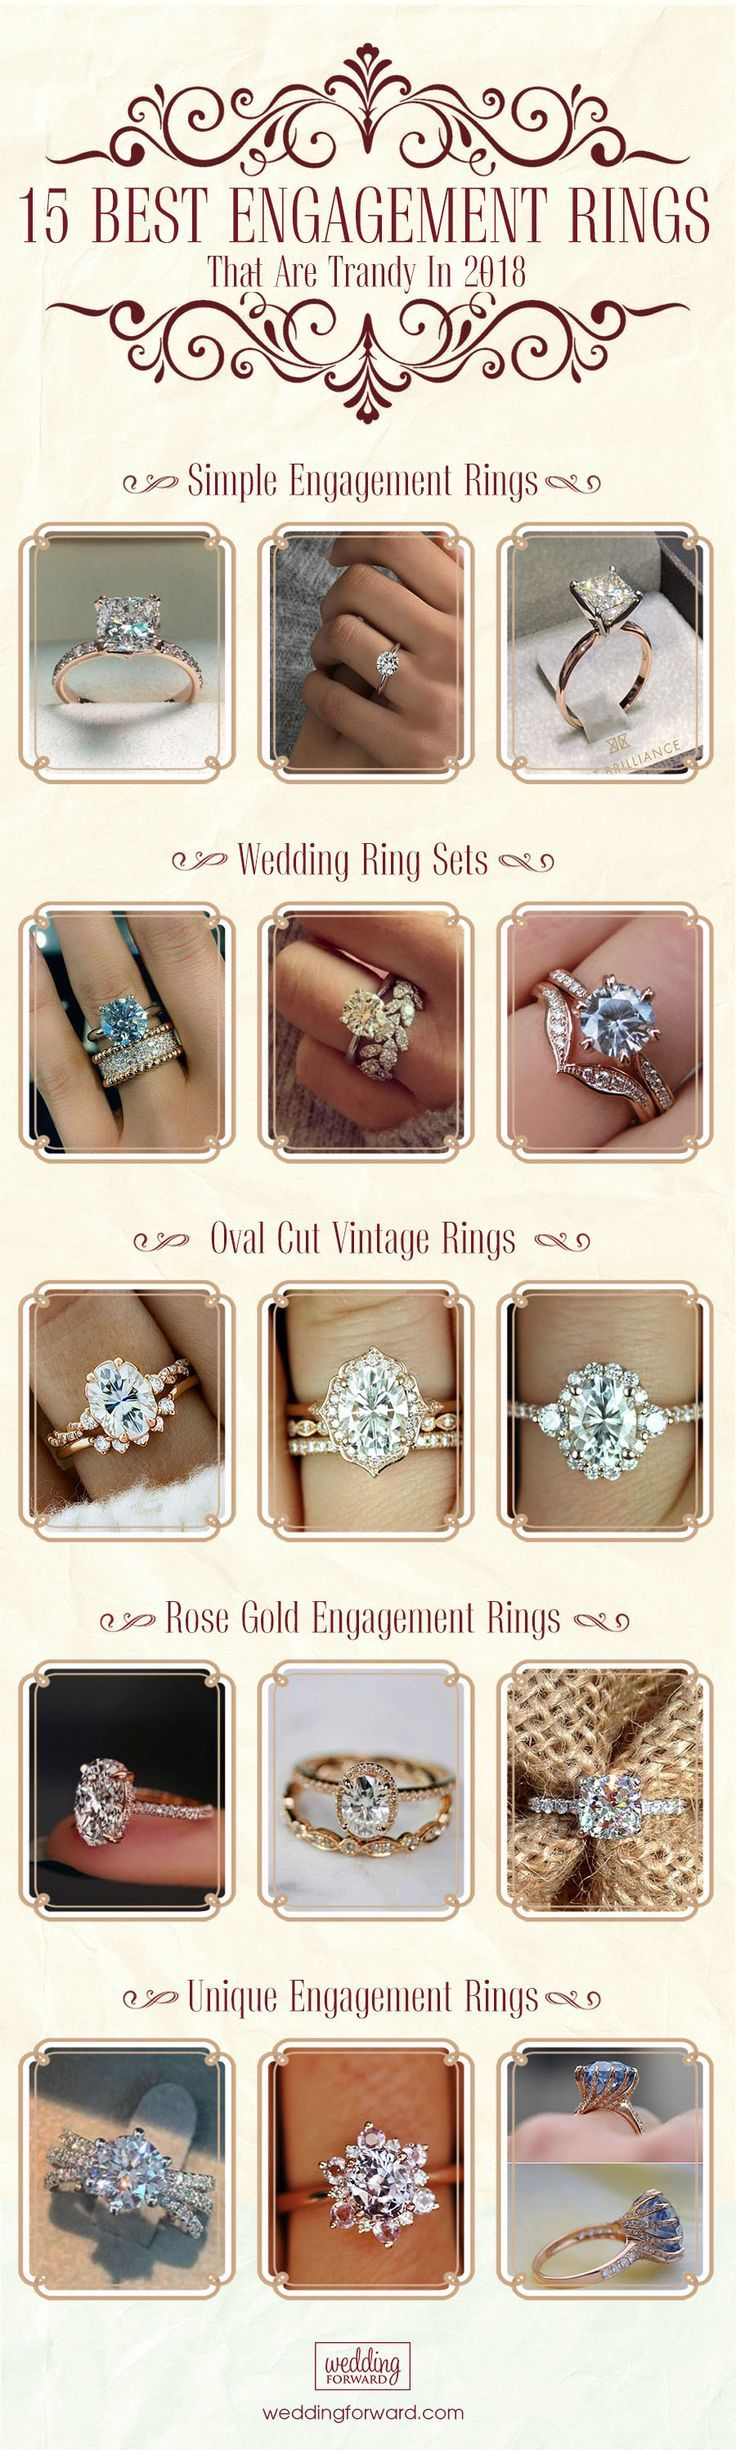 10 Fresh Engagement Ring Trends For 2018 ❤️ Ring trends change every year. Look at the gallery with the 60 TOP engagement ring photos. Only hottest engagement ring trends! Make her say 'yes'! See more: weddingforward.com/ring-trends/ #engagement #rings